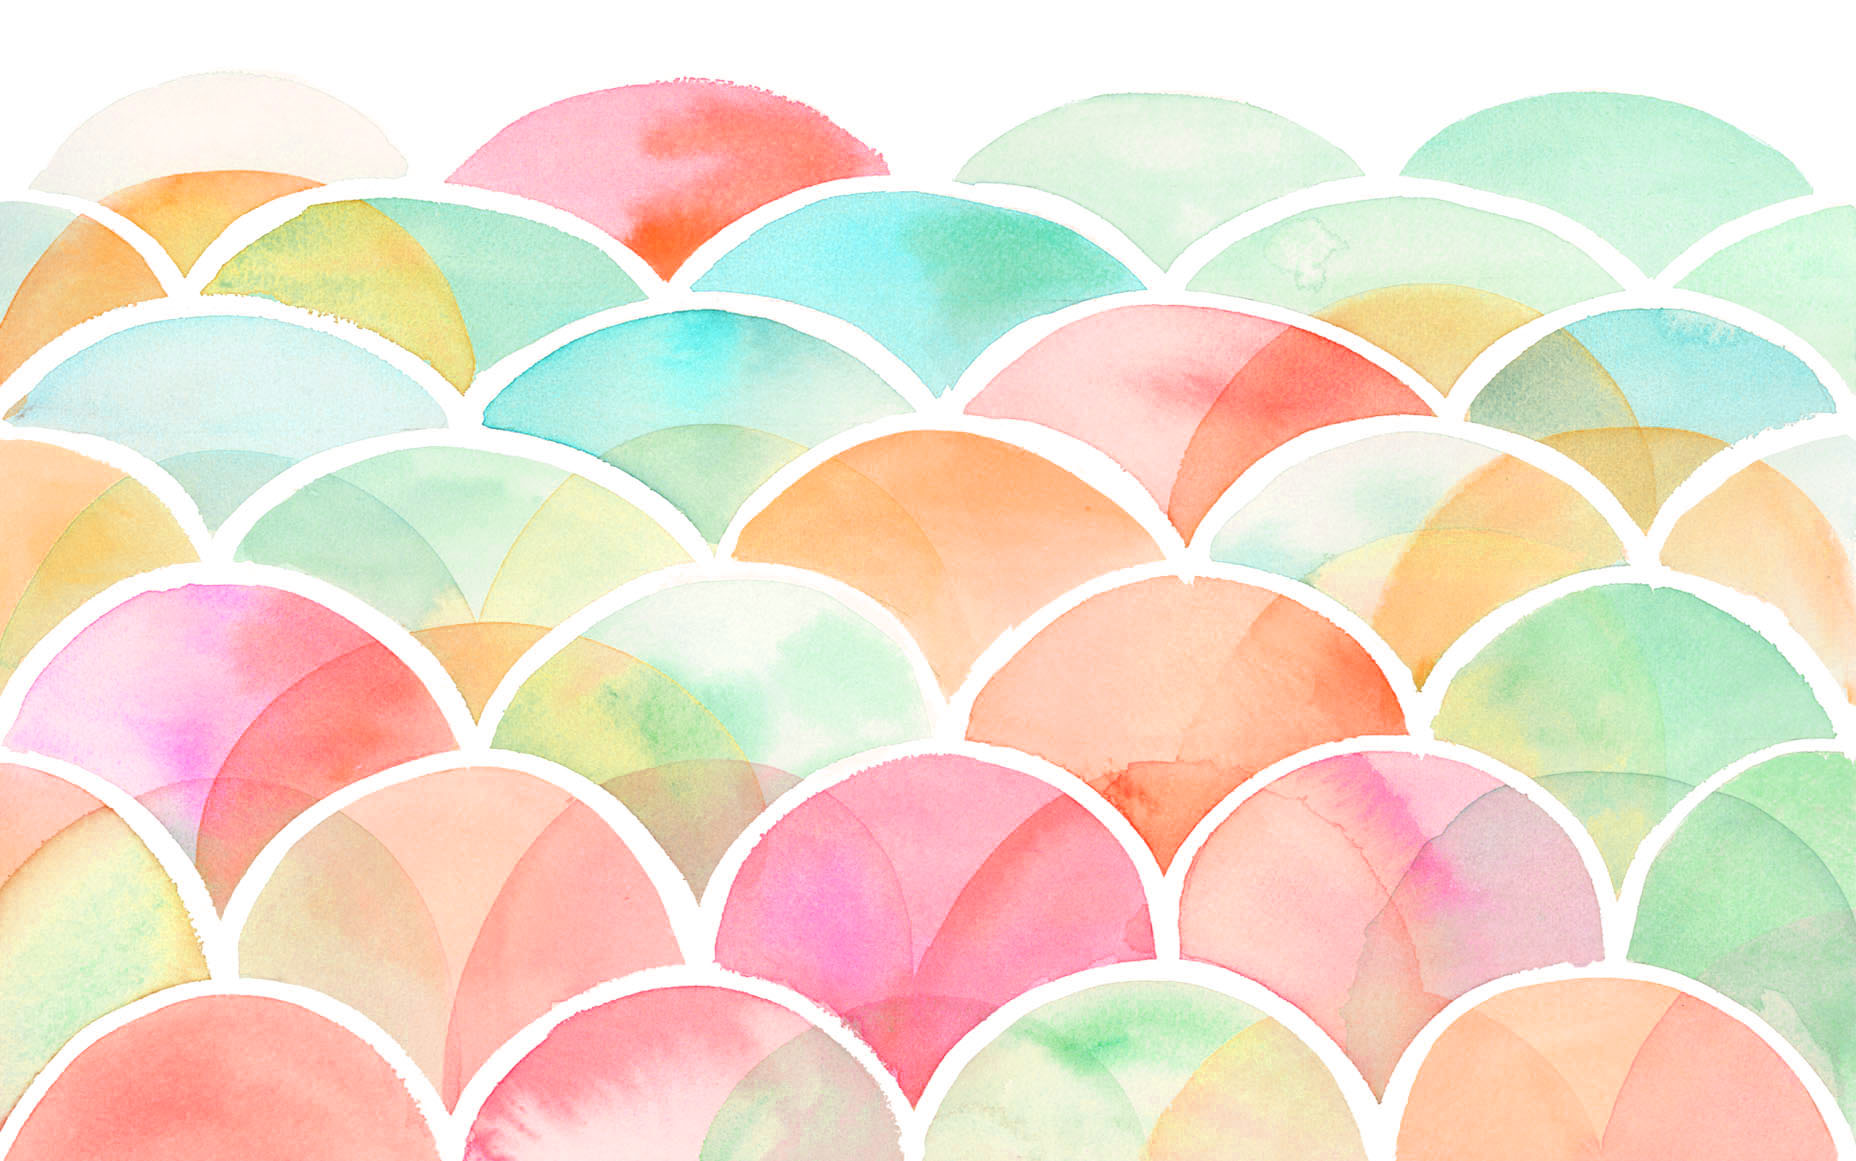 watercolor wallpaper for desktop   wallpapersafari